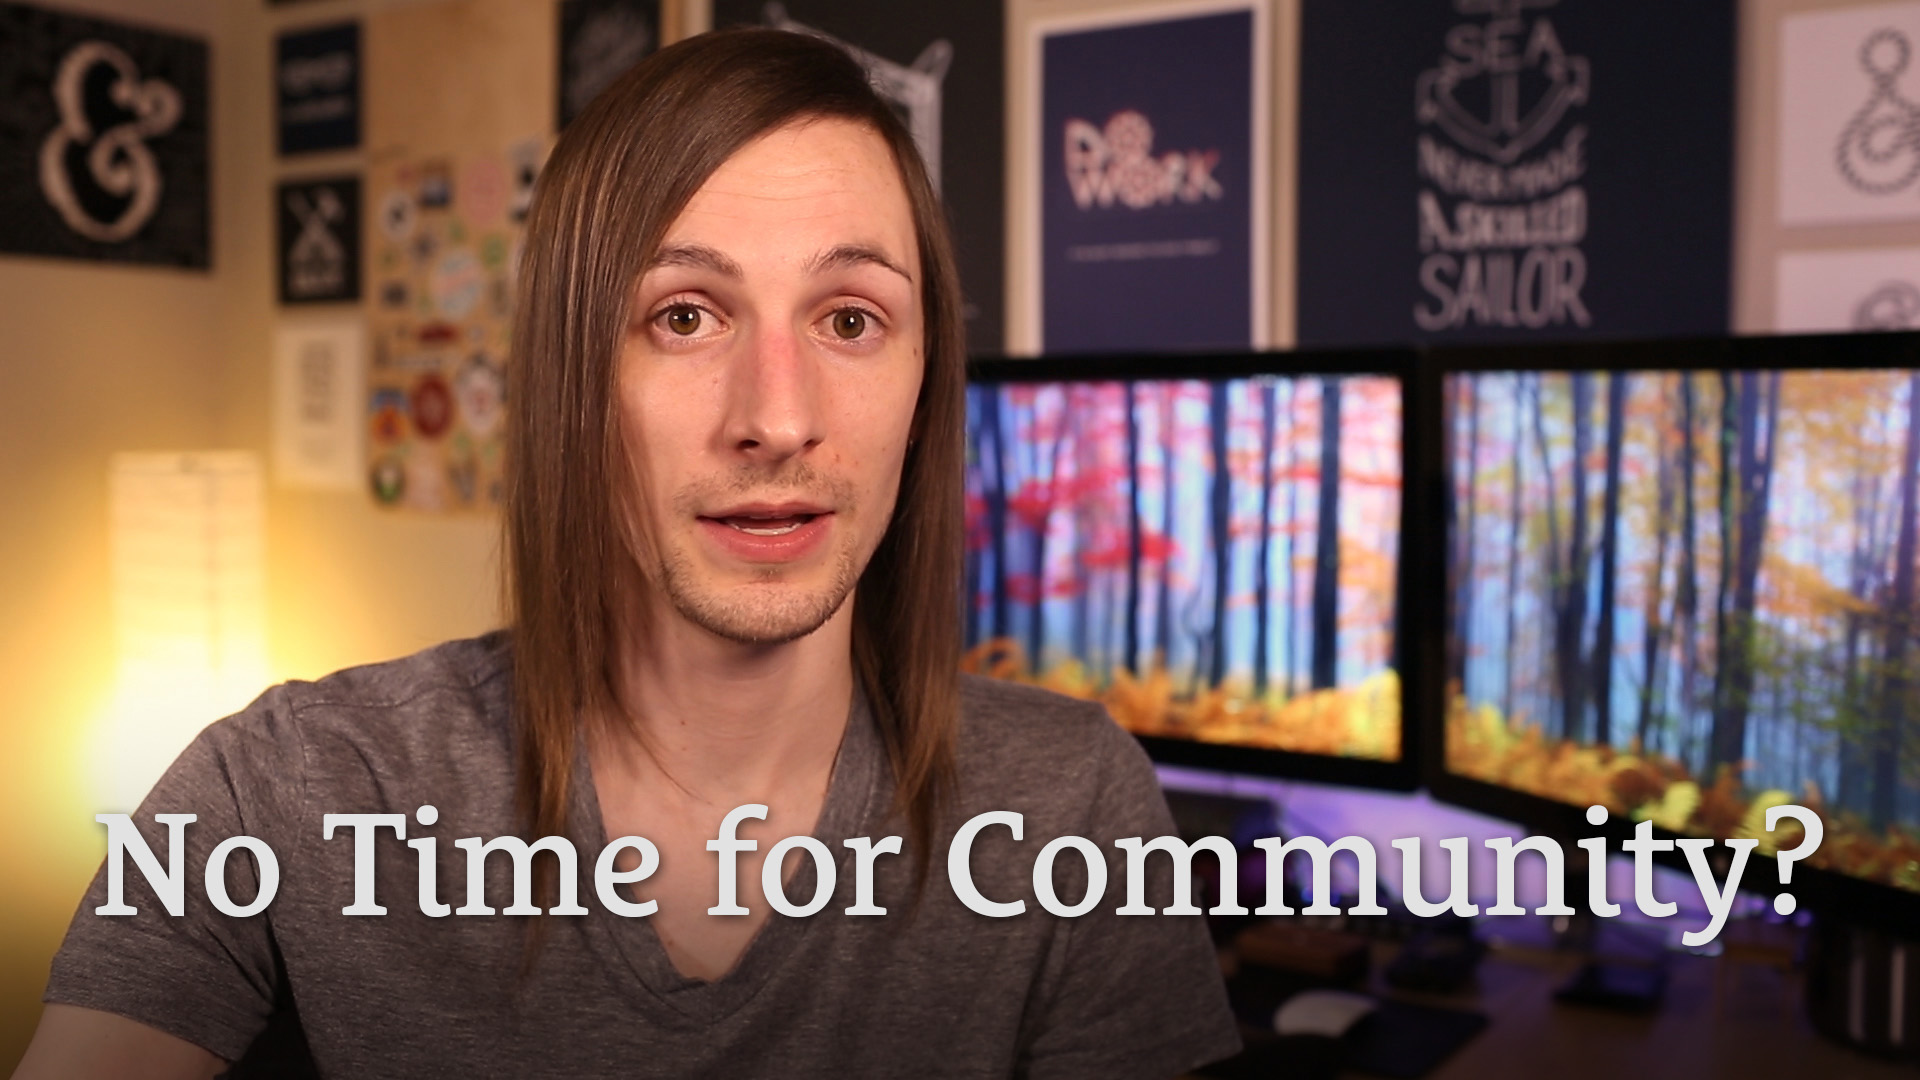 163: I Don't Have Time to Join a Community